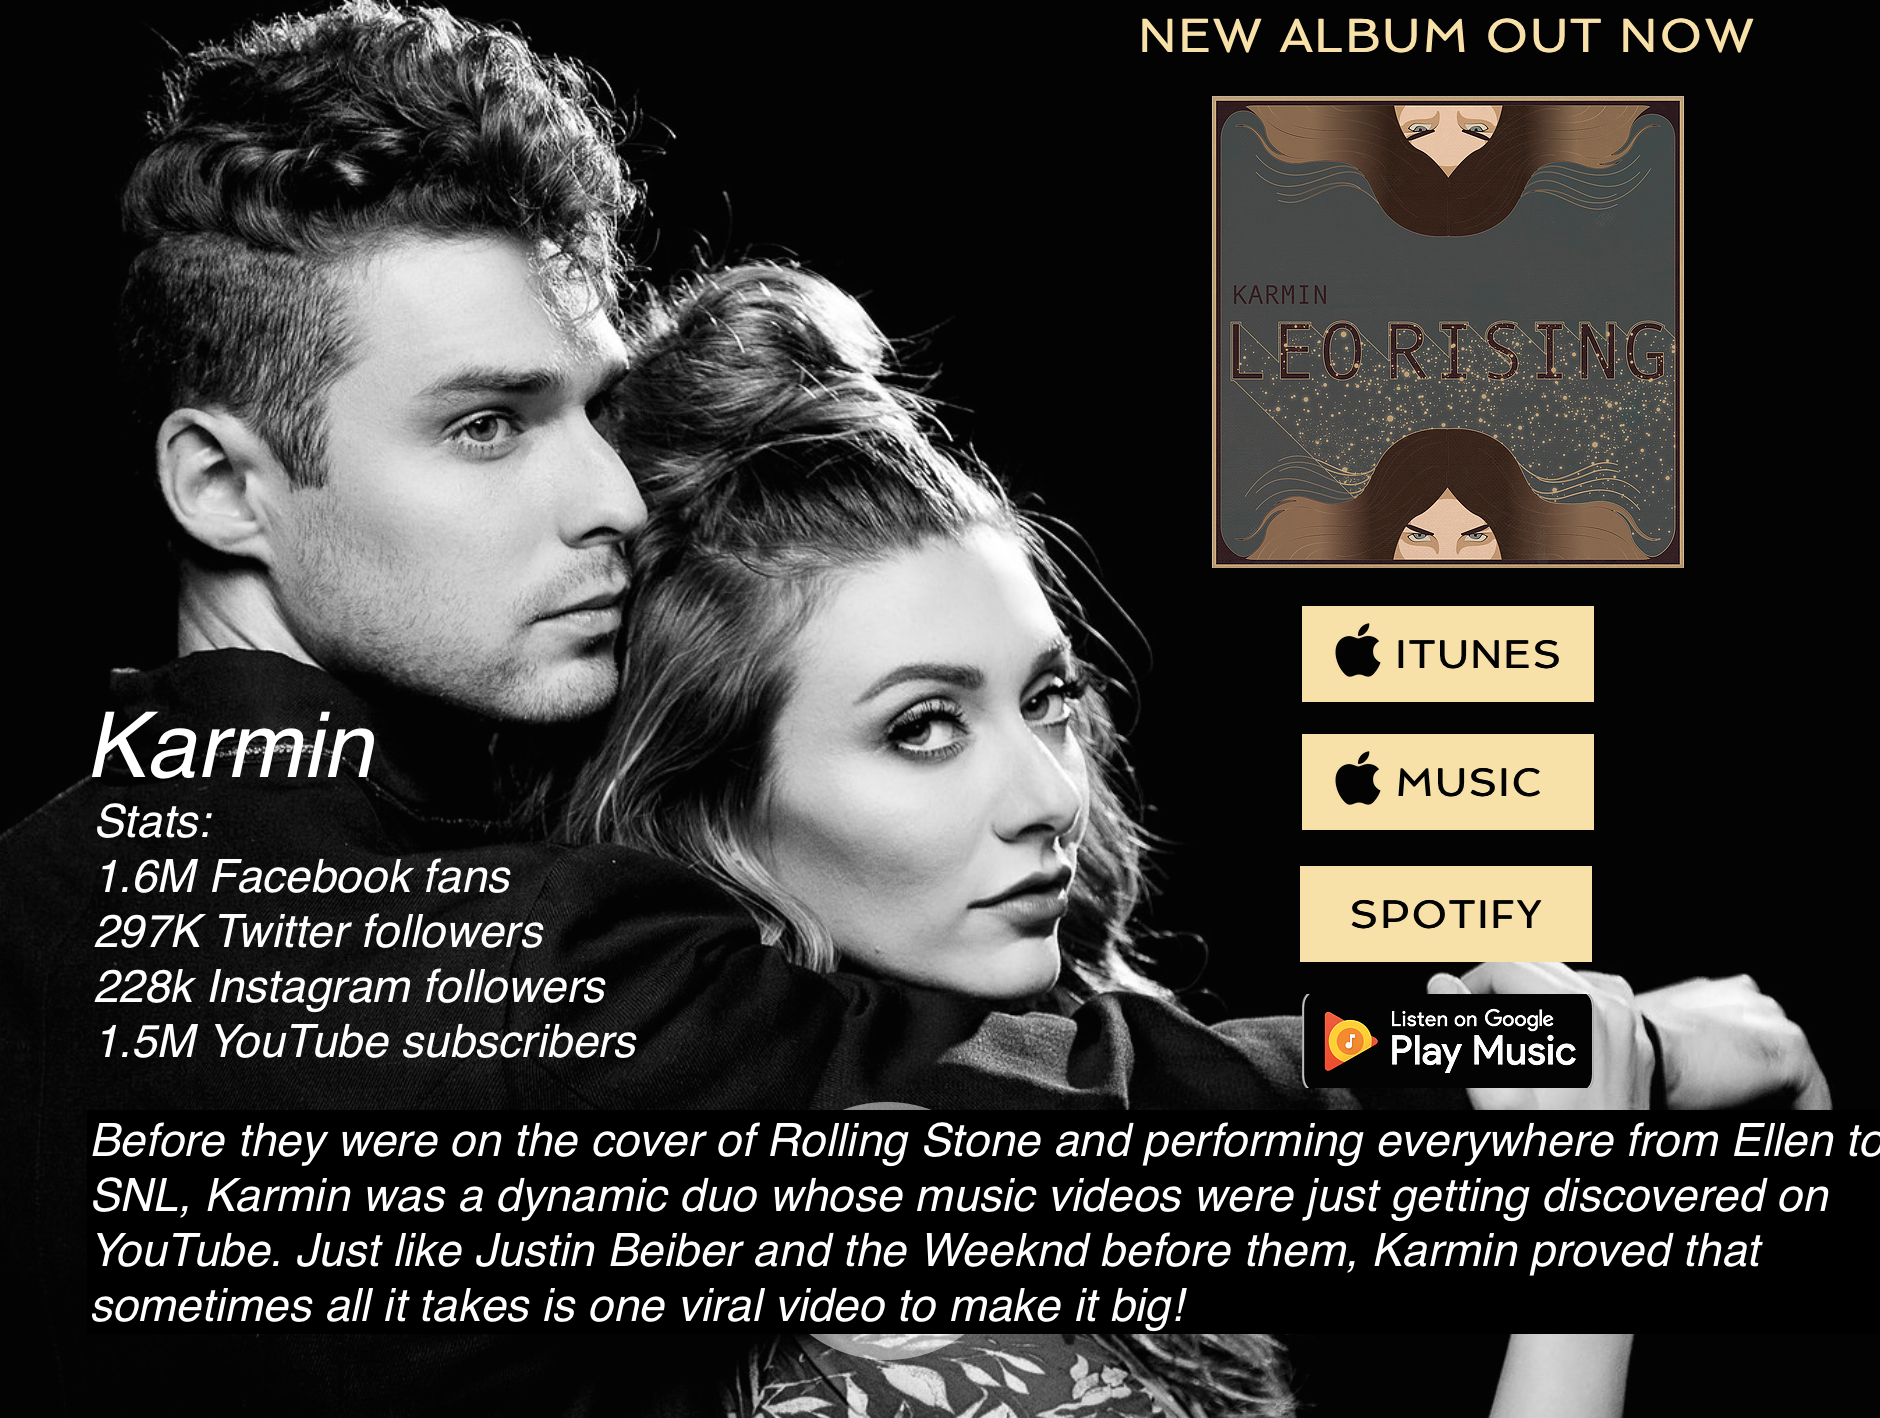 The Discovery Act – Karmin   Stats: 1.6M Facebook fans / 297K Twitter followers / 228k Instagram followers / 1.5M YouTube subscribers  Before they were on the cover of Rolling Stone and performing everywhere from Ellen to SNL, Karmin  was a dynamic duo whose music videos were just getting discovered on YouTube. Just like Justin Beiber and the Weeknd before them, Karmin proved that sometimes all it takes is one viral video to make it big! http://www.karminmusic.com   But what contributed to that viral video? Great timing, hard work and being consistent with their video marketing strategy.   If you want to really rock this network and build a huge channel, you will need to create your content with the over all health of your channel and music brand in mind.